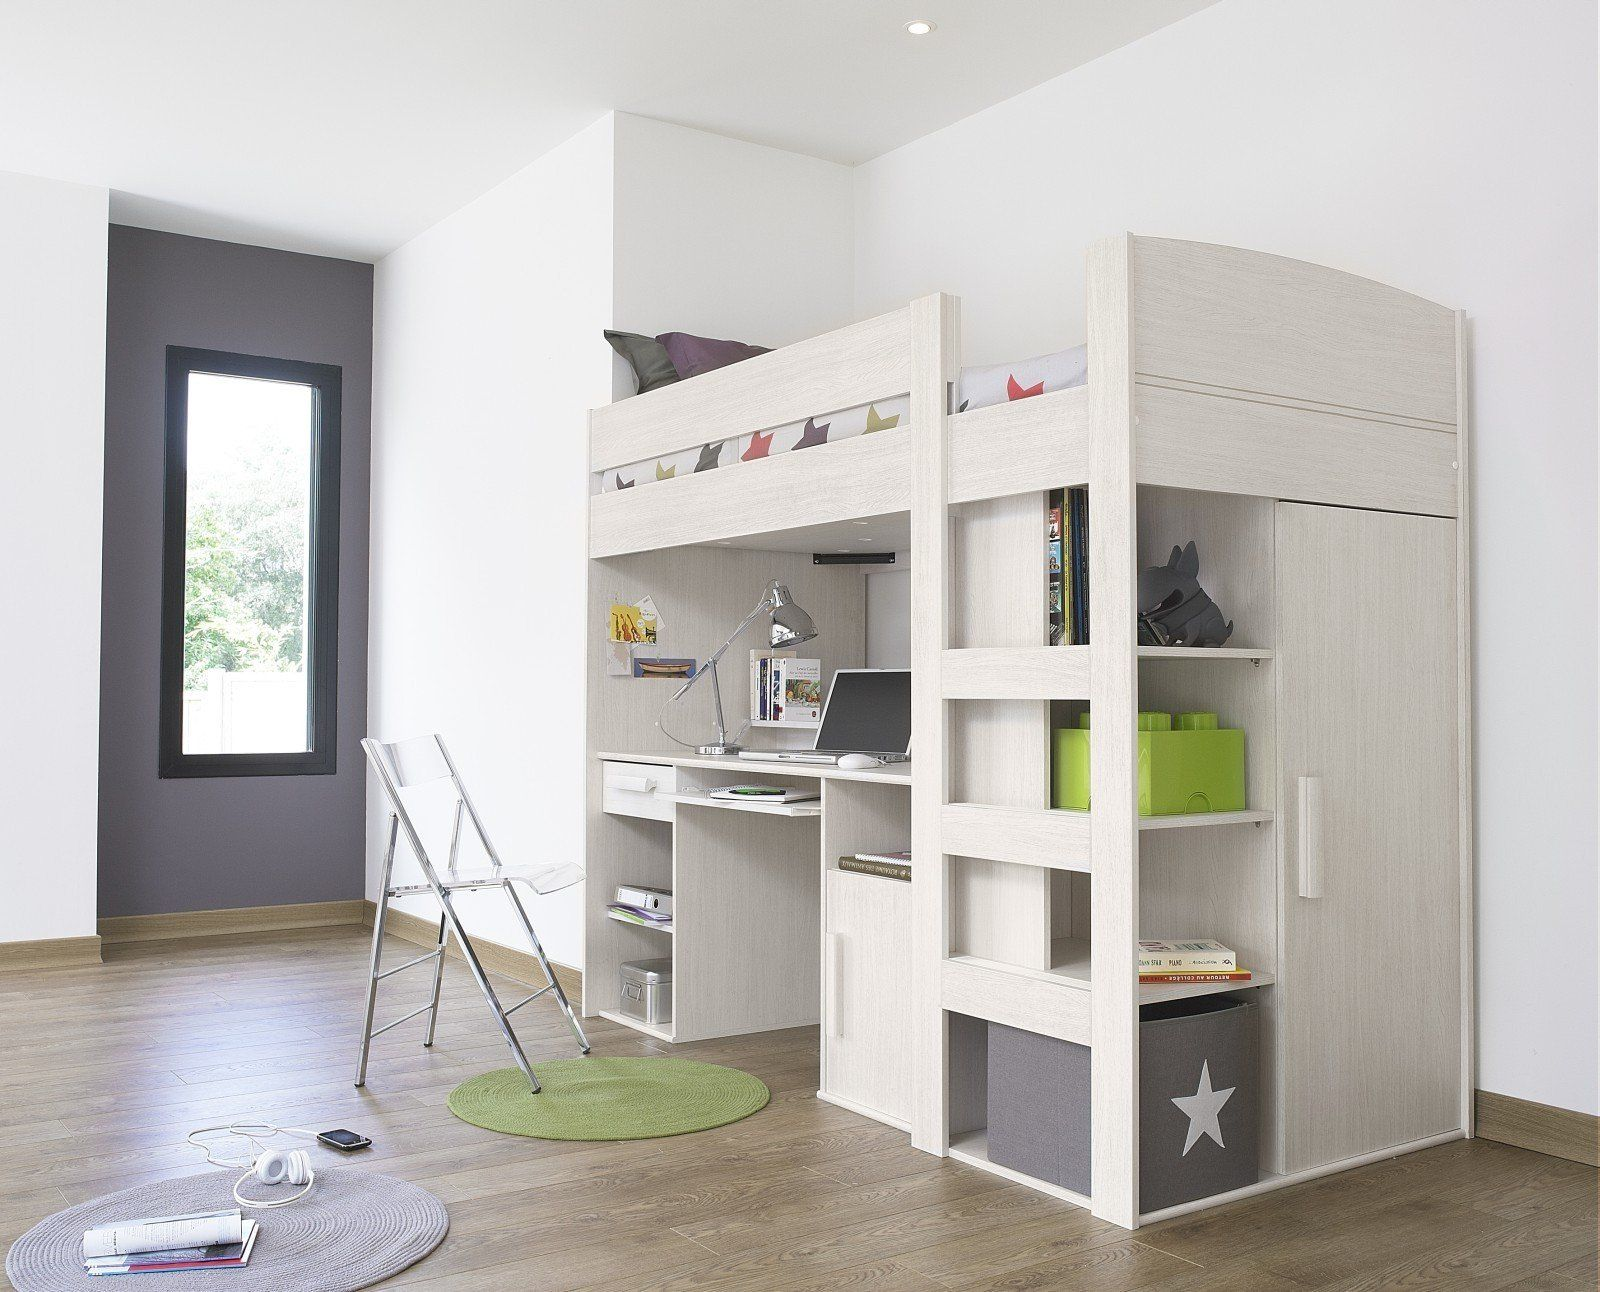 Furniture Bunk Beds With Desks Underneath Captivating Design Kids BedroomKids RoomsBedroom IdeasBed